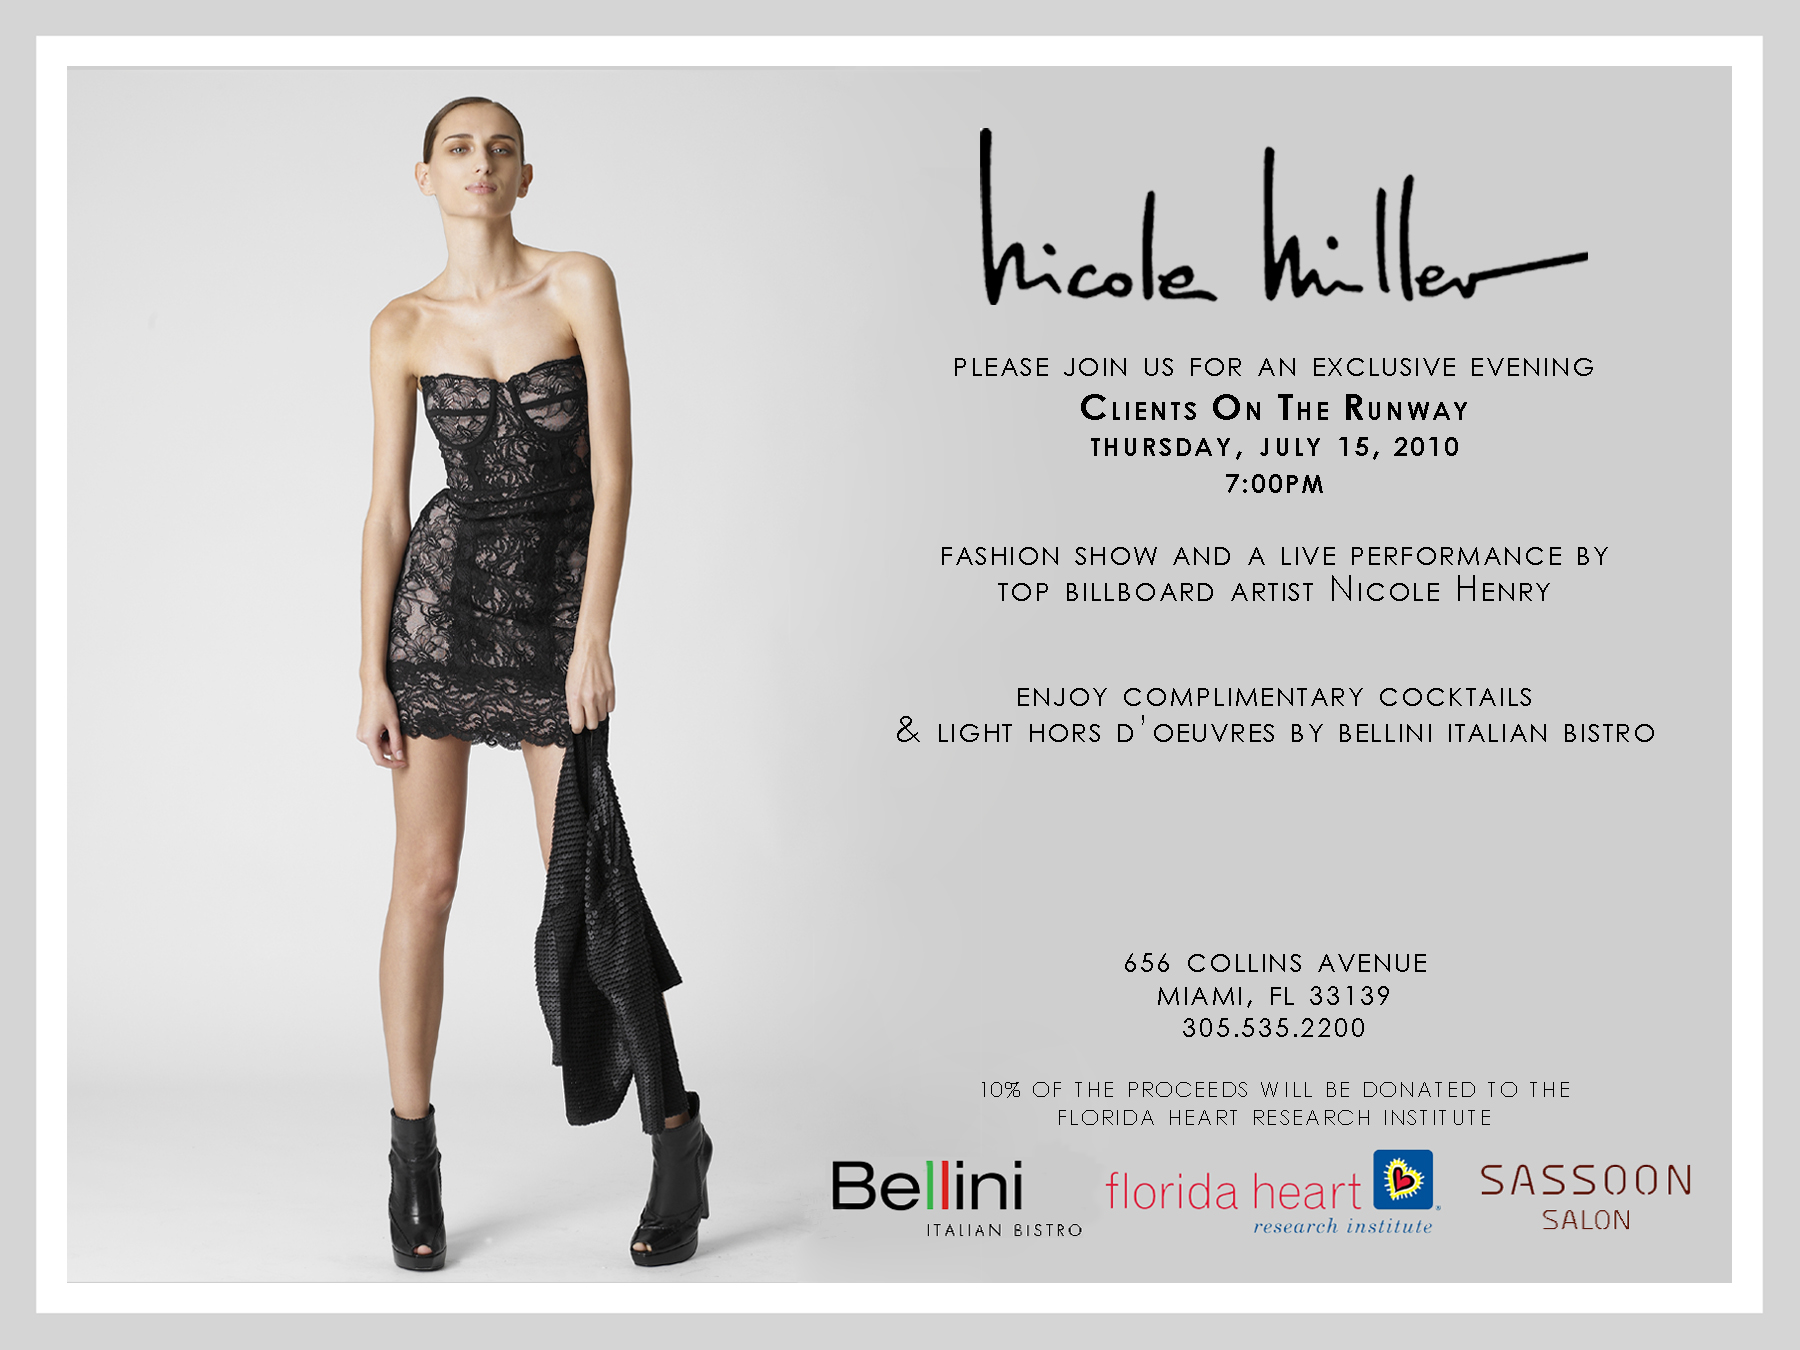 Nicole Miller Miami Hosts An Exclusive Evening To Benefit The Florida Heart Research Institute Premier Guide Miami